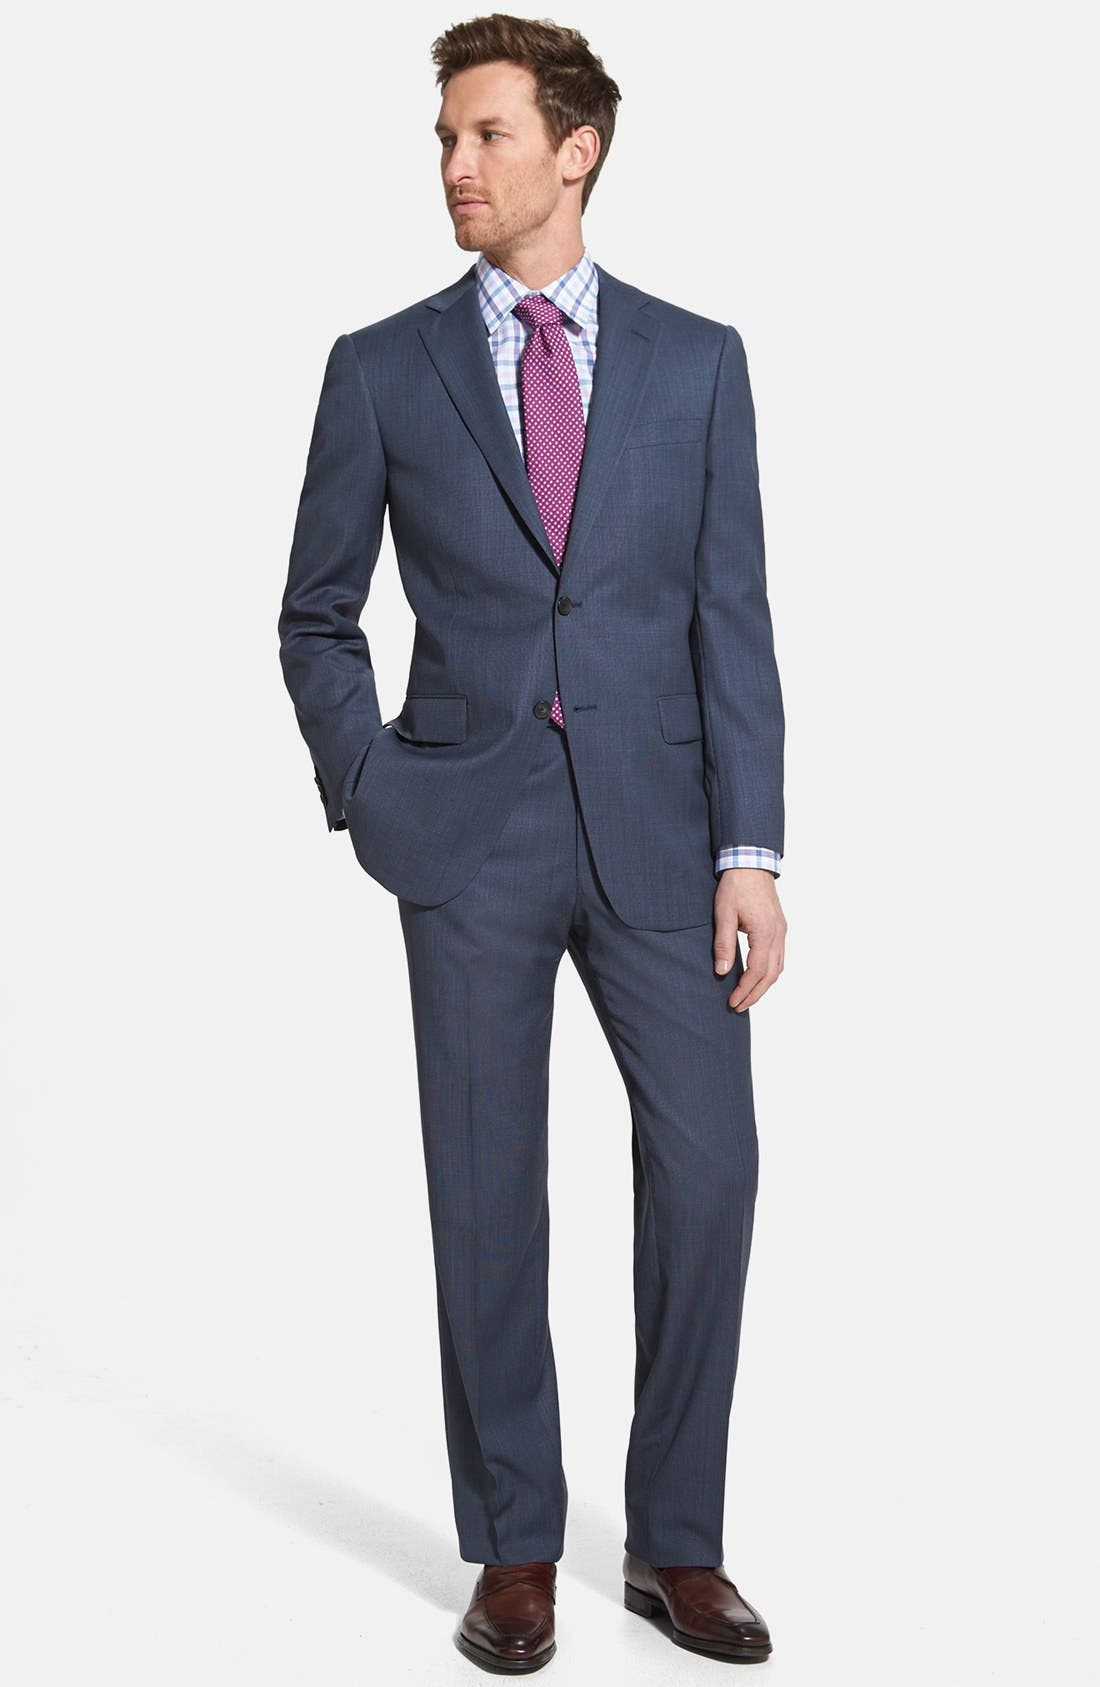 Main Image - NY 2BTN SV FF CLASSIC FIT SUIT